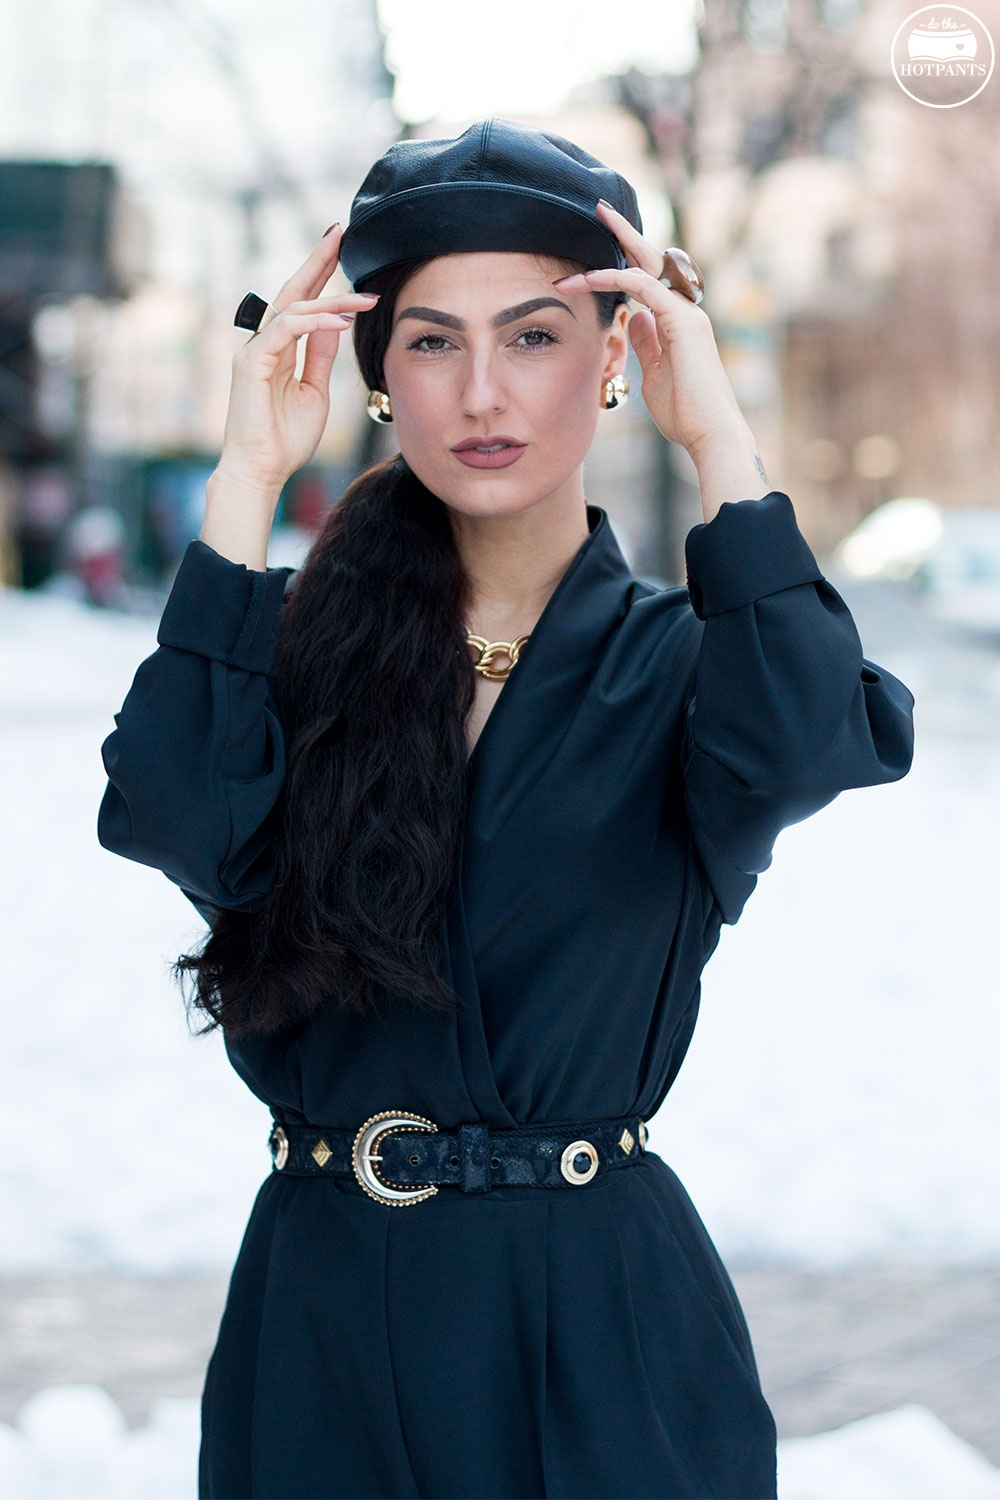 Do The Hotpants Dana Suchow Black Goth Jumpsuit Side Ponytail Leather Hat Winter Fashion Woman in Snow IMG_6408